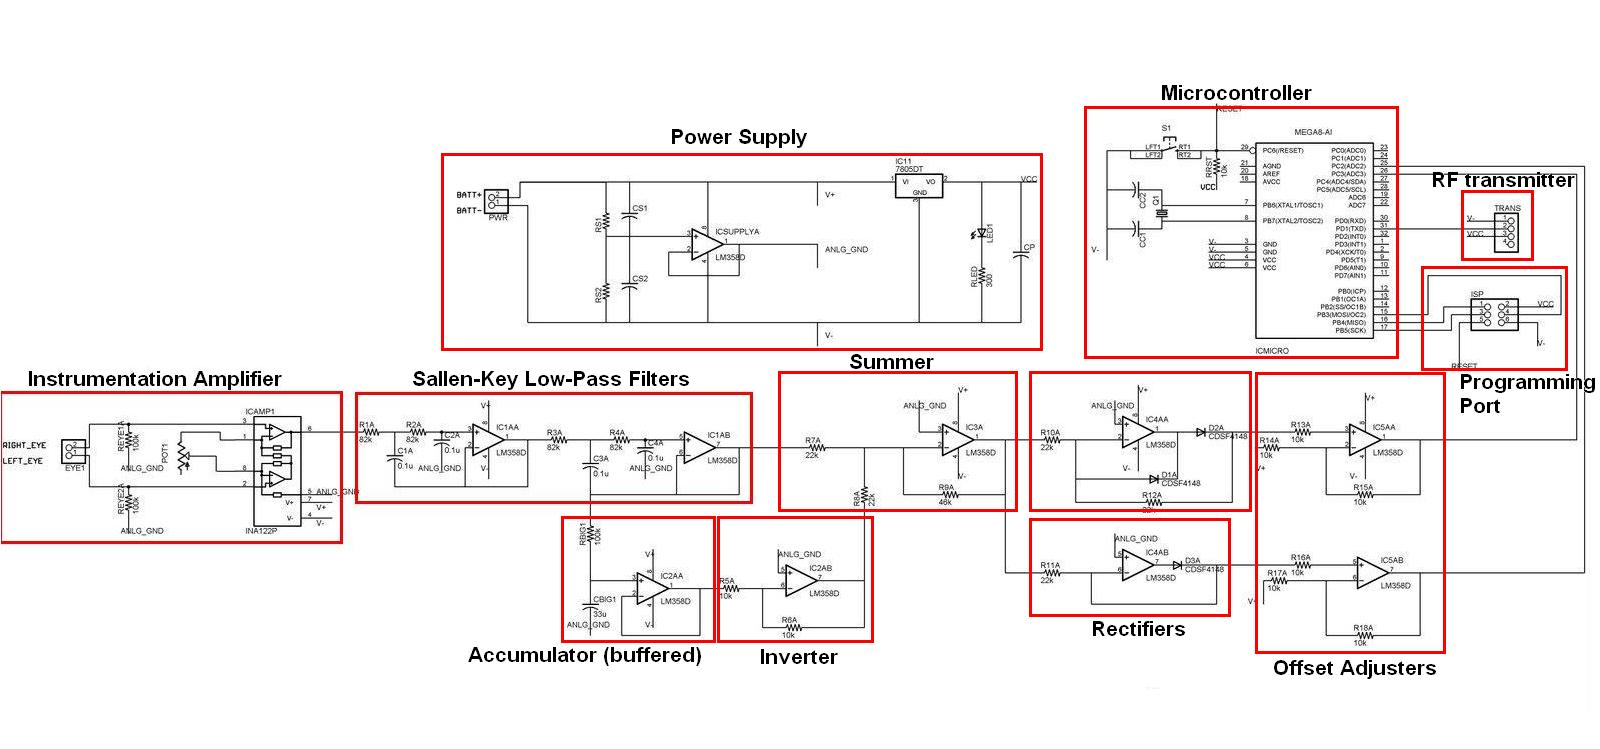 Click for explanation of Schematic sections